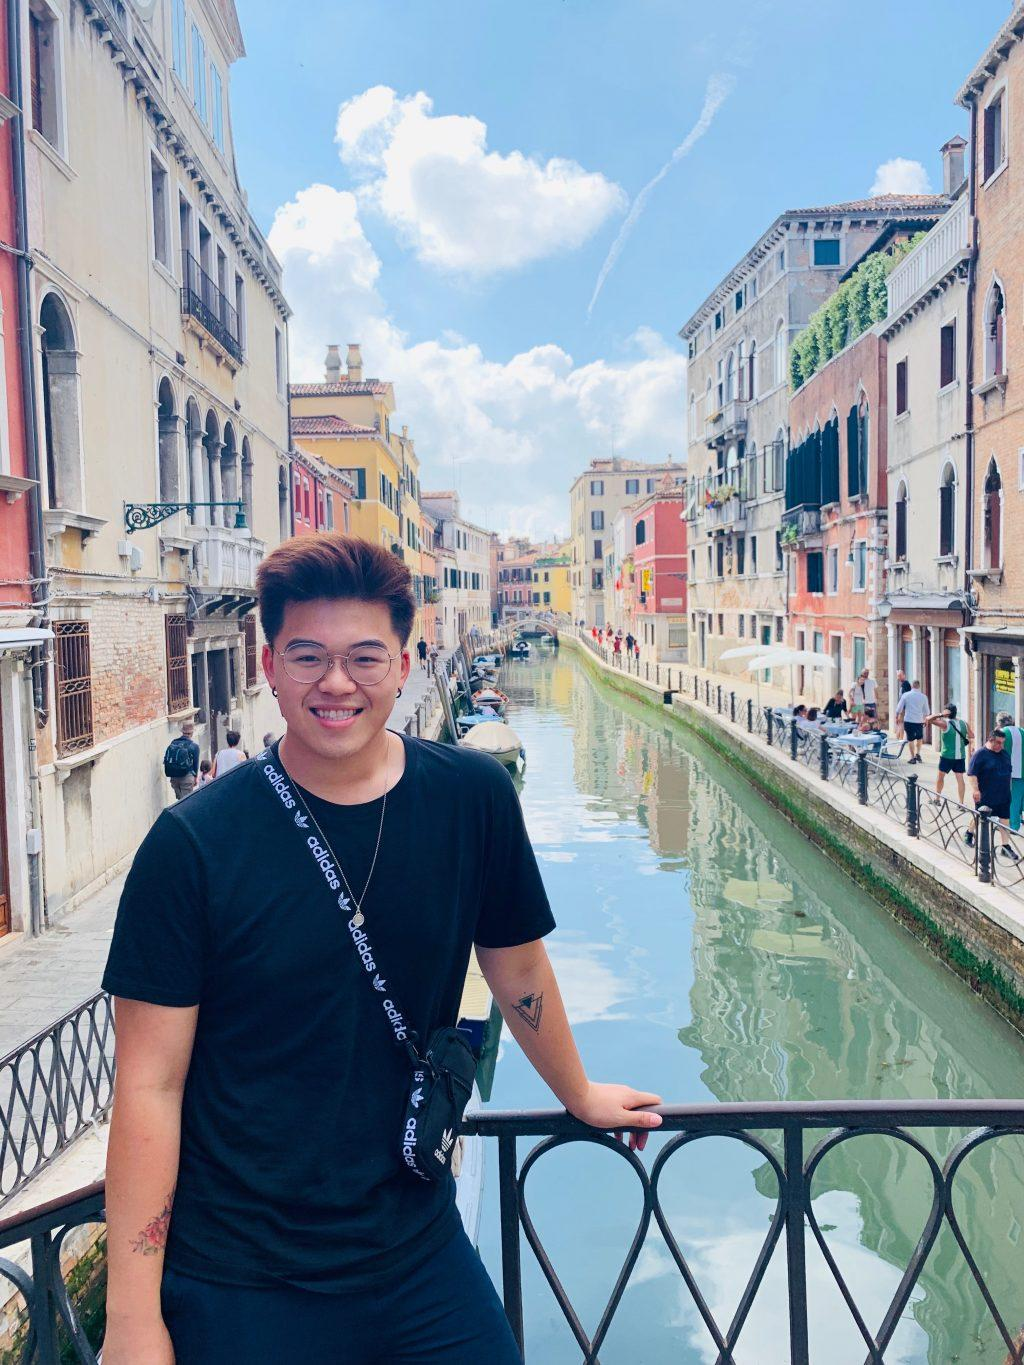 Alhambra, California resident Derek Wu stands next to a canal in Venice, Italy during his study program with the University of California Riverside. Although he lives in a predominantly Asian community, Wu said he feels self-conscious of his race and ethnicity when he goes go to places where Asian Americans might not frequent. Photo courtesy of Derek Wu.